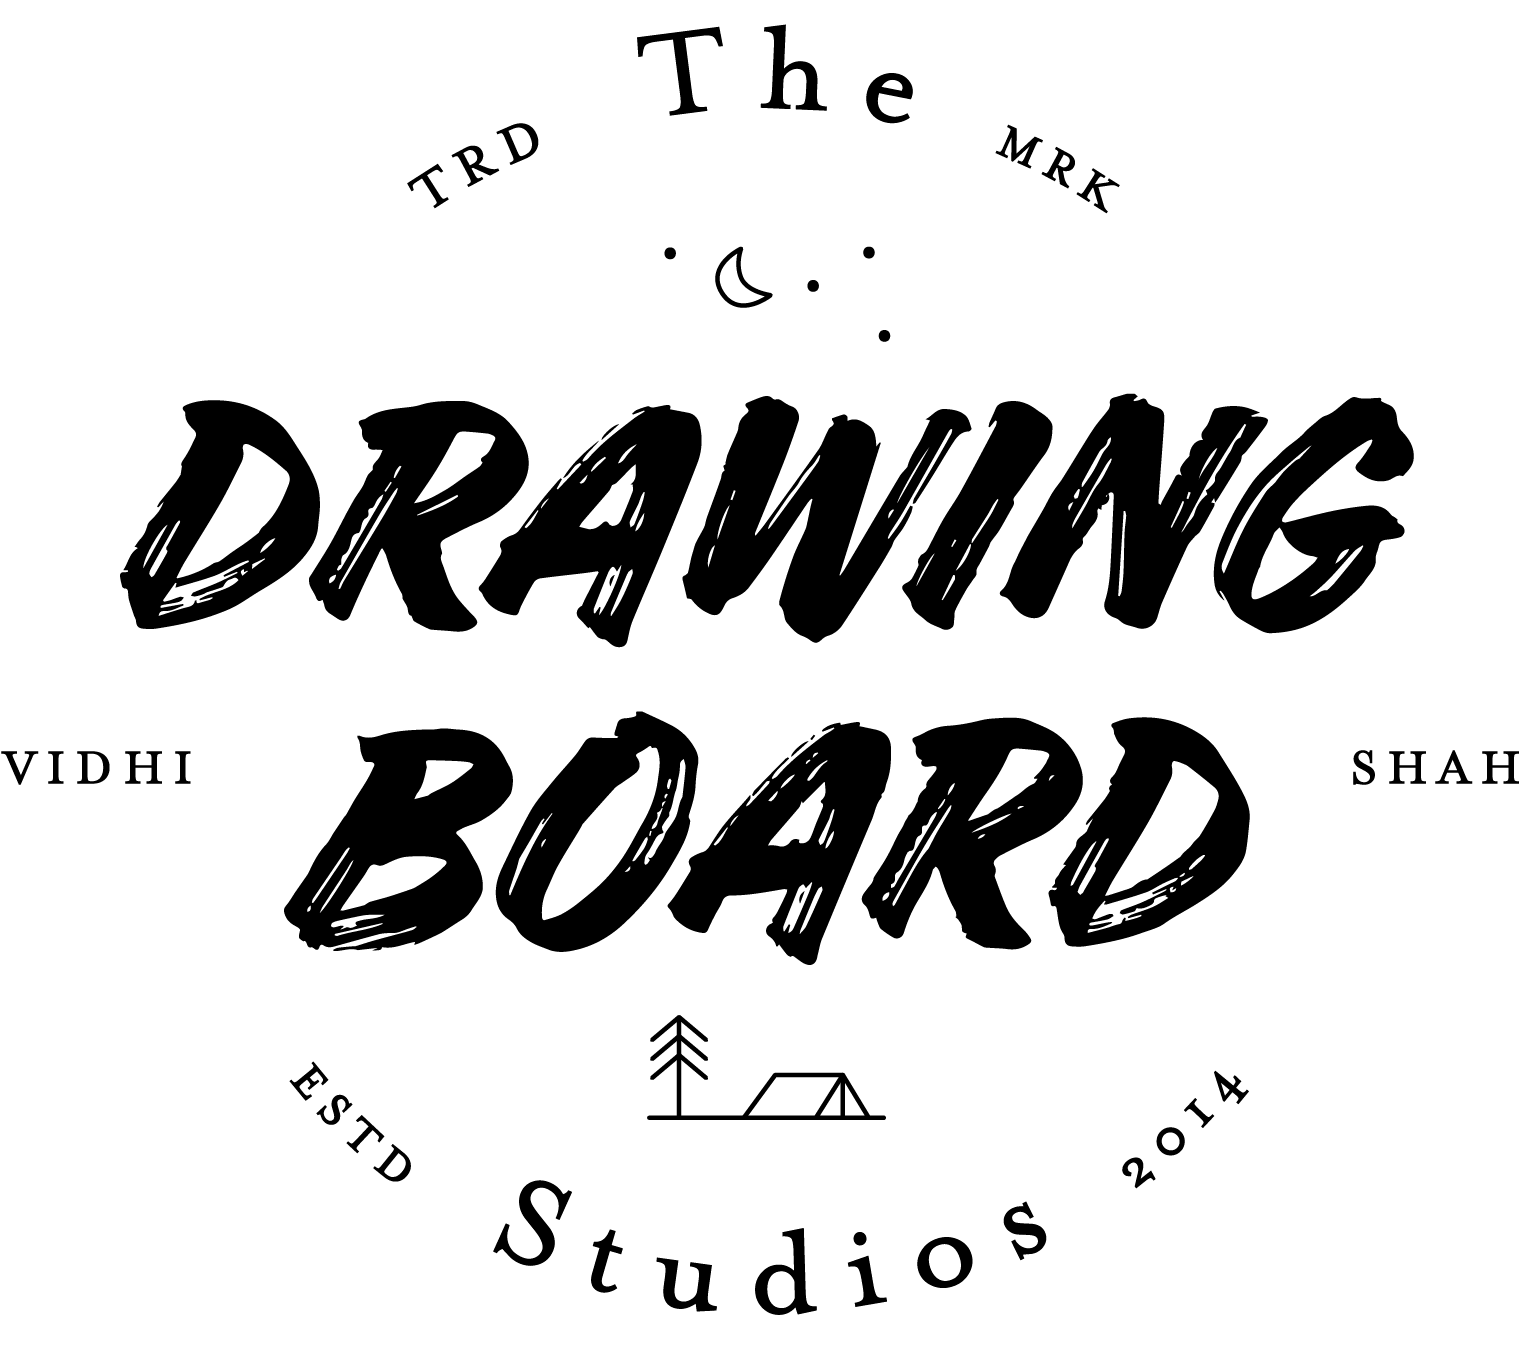 Republic drawing poster. The board